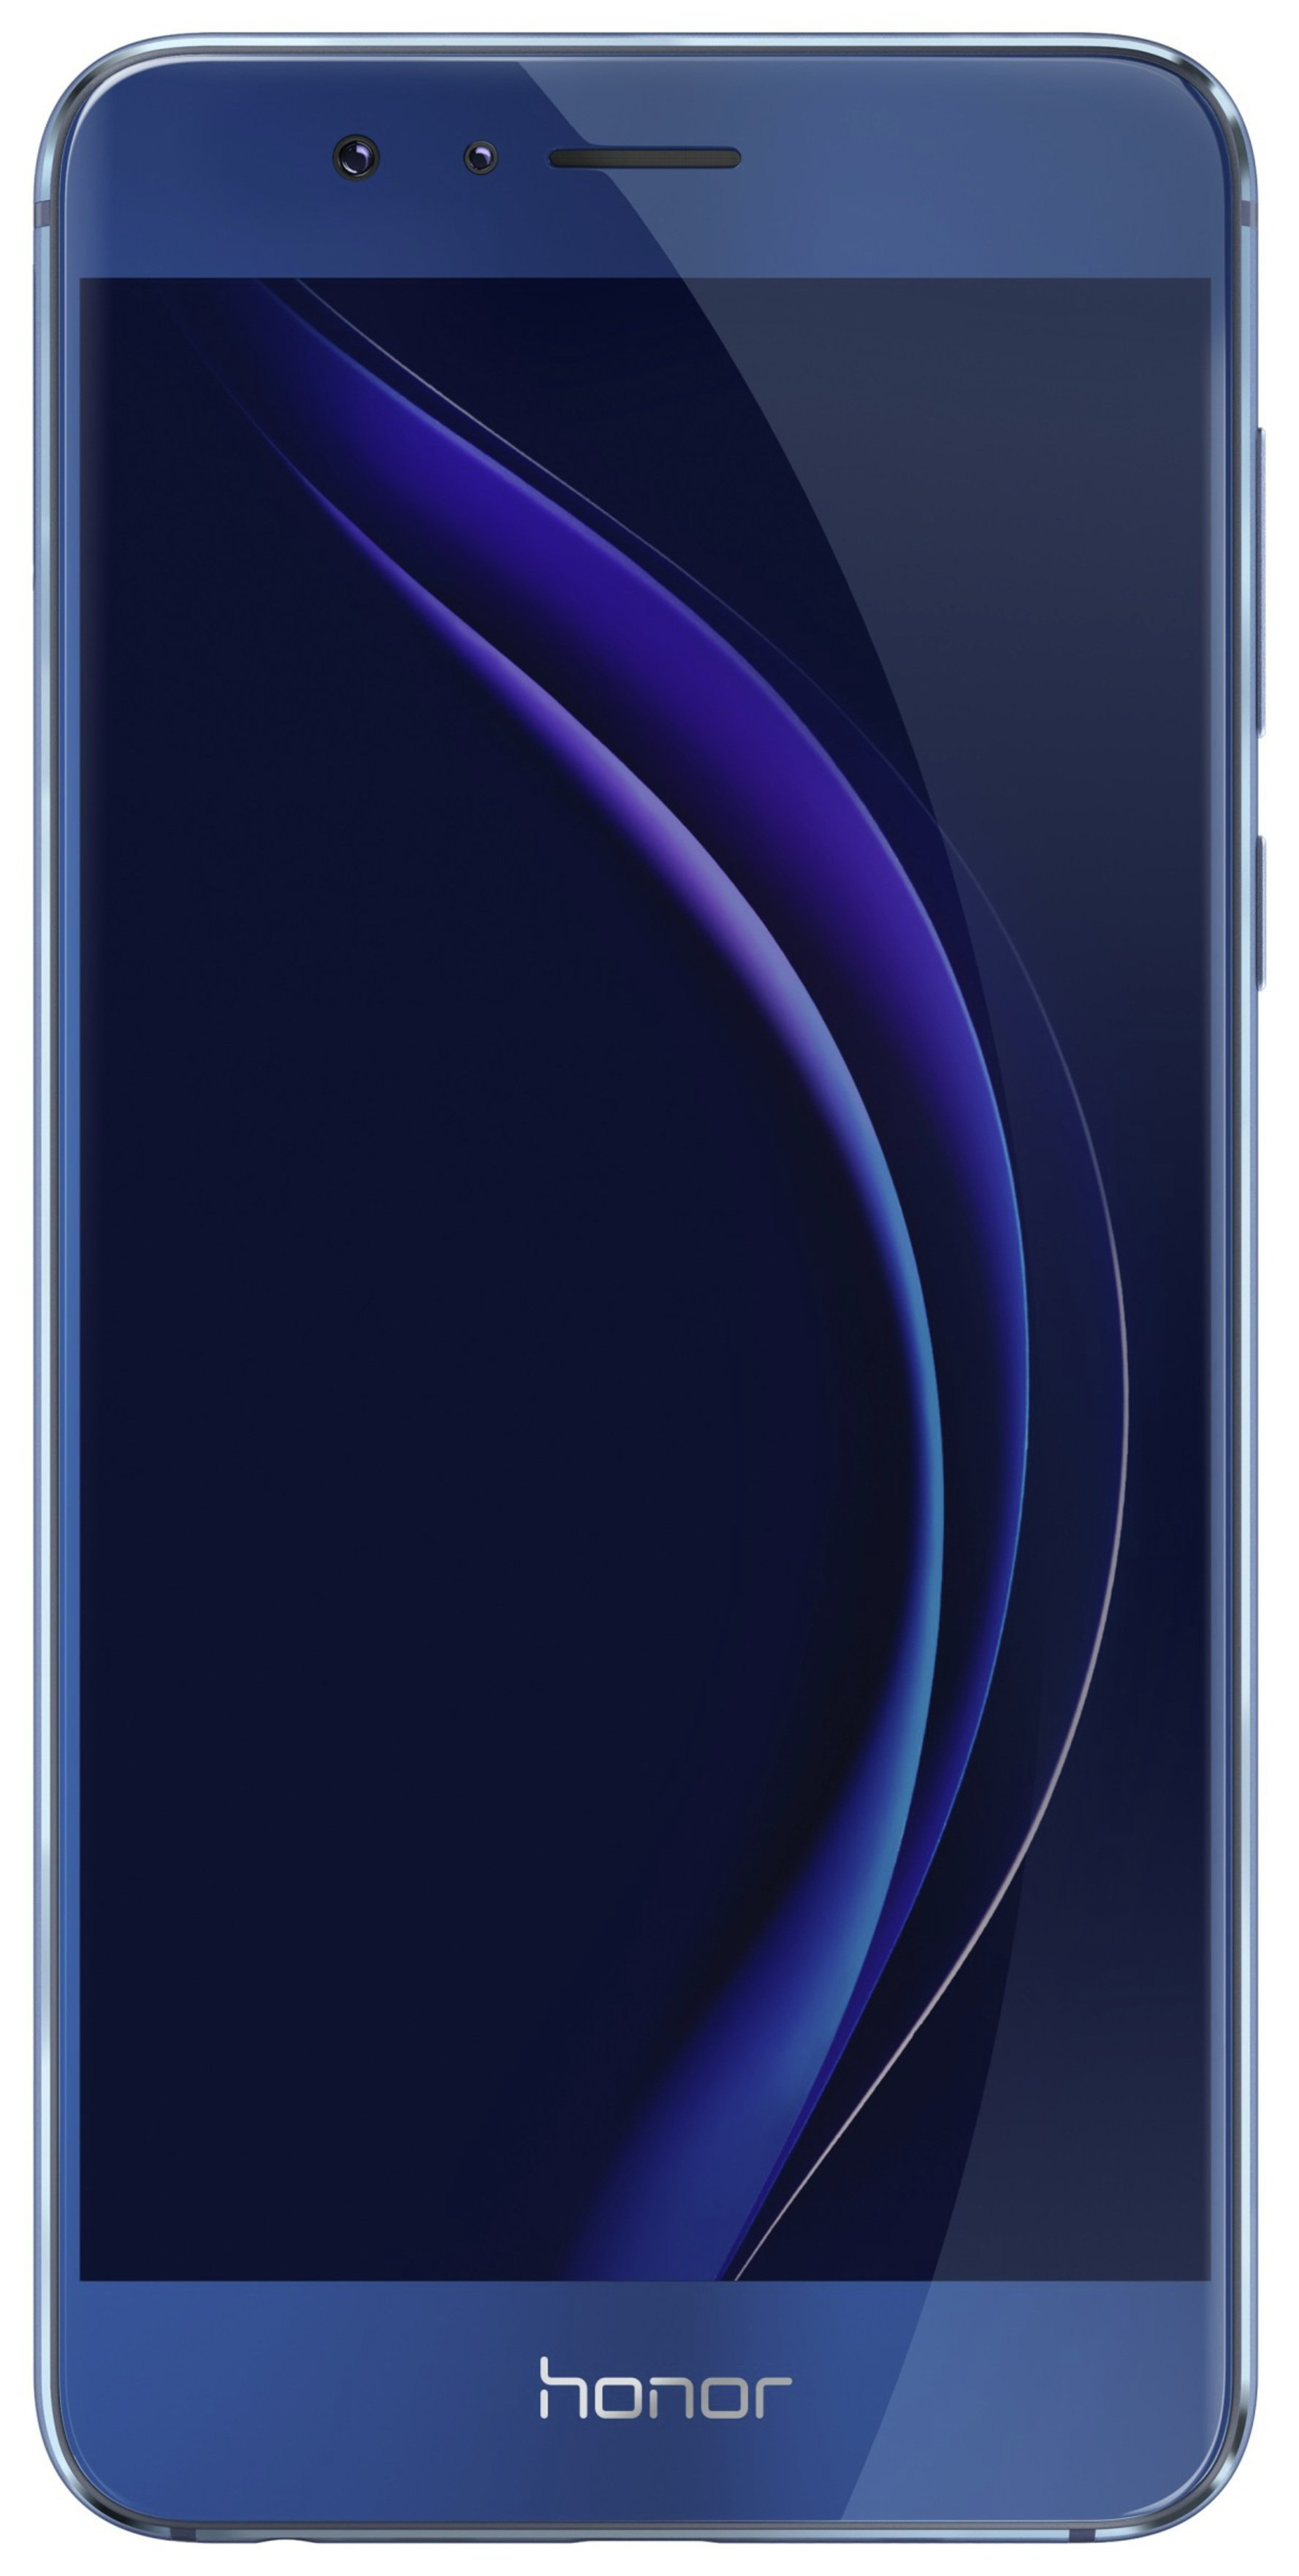 Image of Sim Free Honor 8 Mobile Phone - Blue.